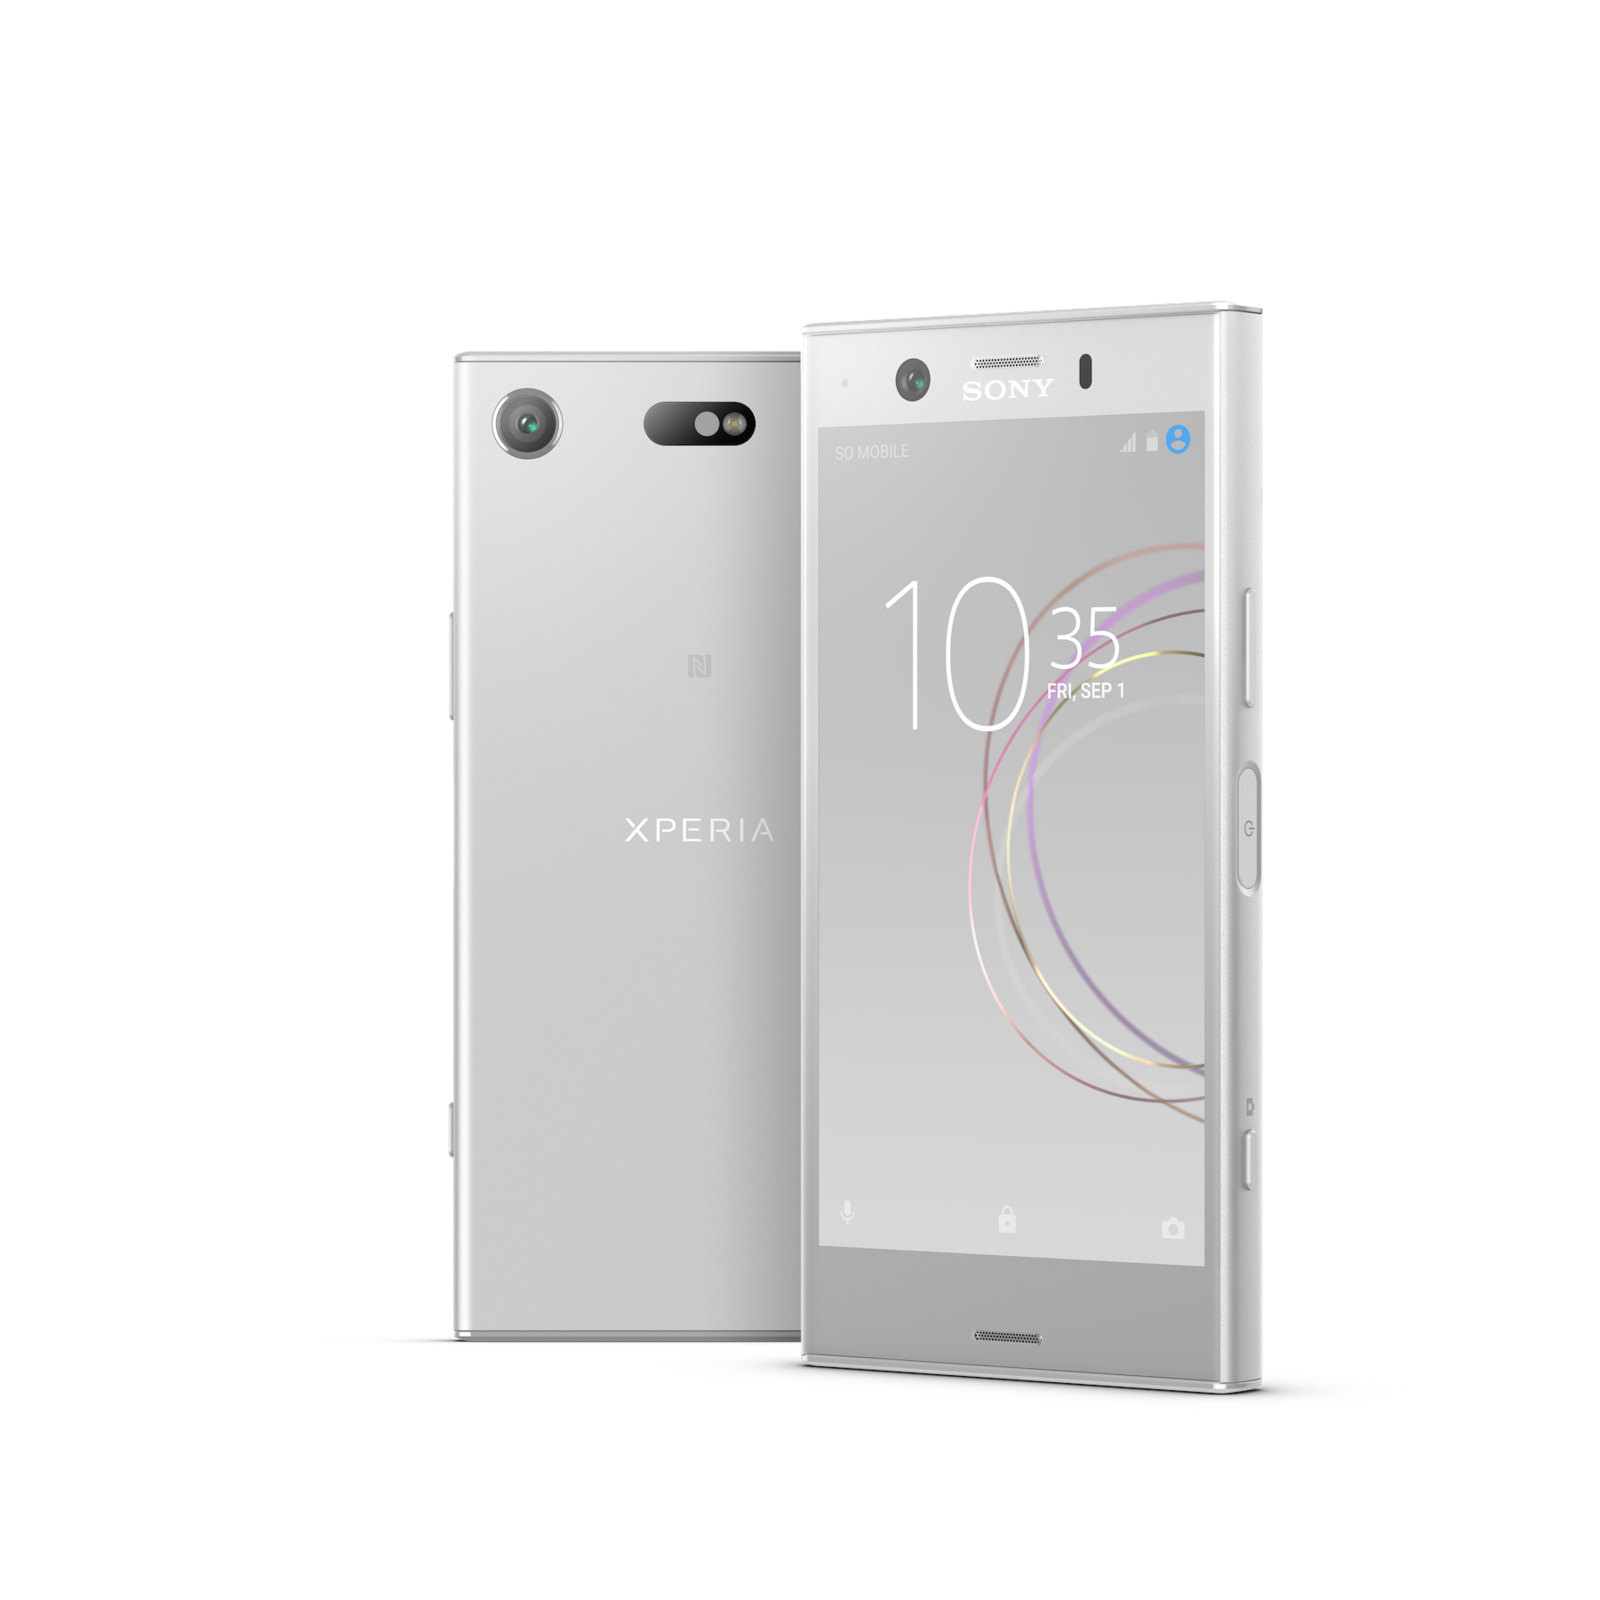 Android Oreo 8.0 Rolling Out To Sony Xperia XZ Premium